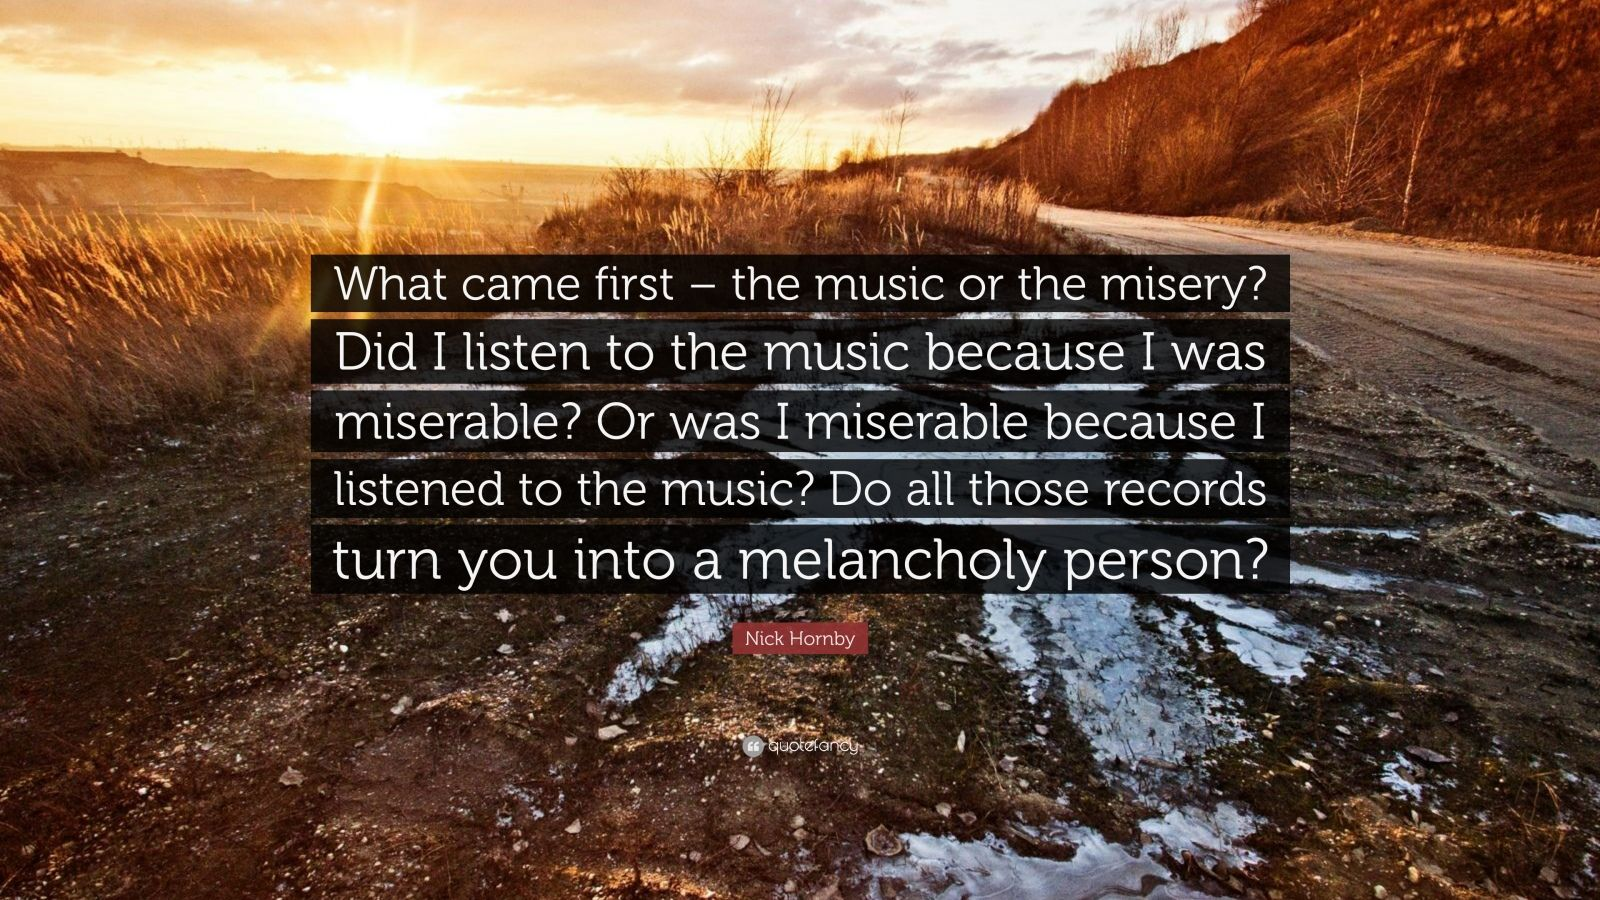 "Nick Hornby Quote: ""What came first – the music or the misery? Did I listen to the music because I was miserable? Or was I miserable because I listened to the music? Do all those records turn you into a melancholy person?"""